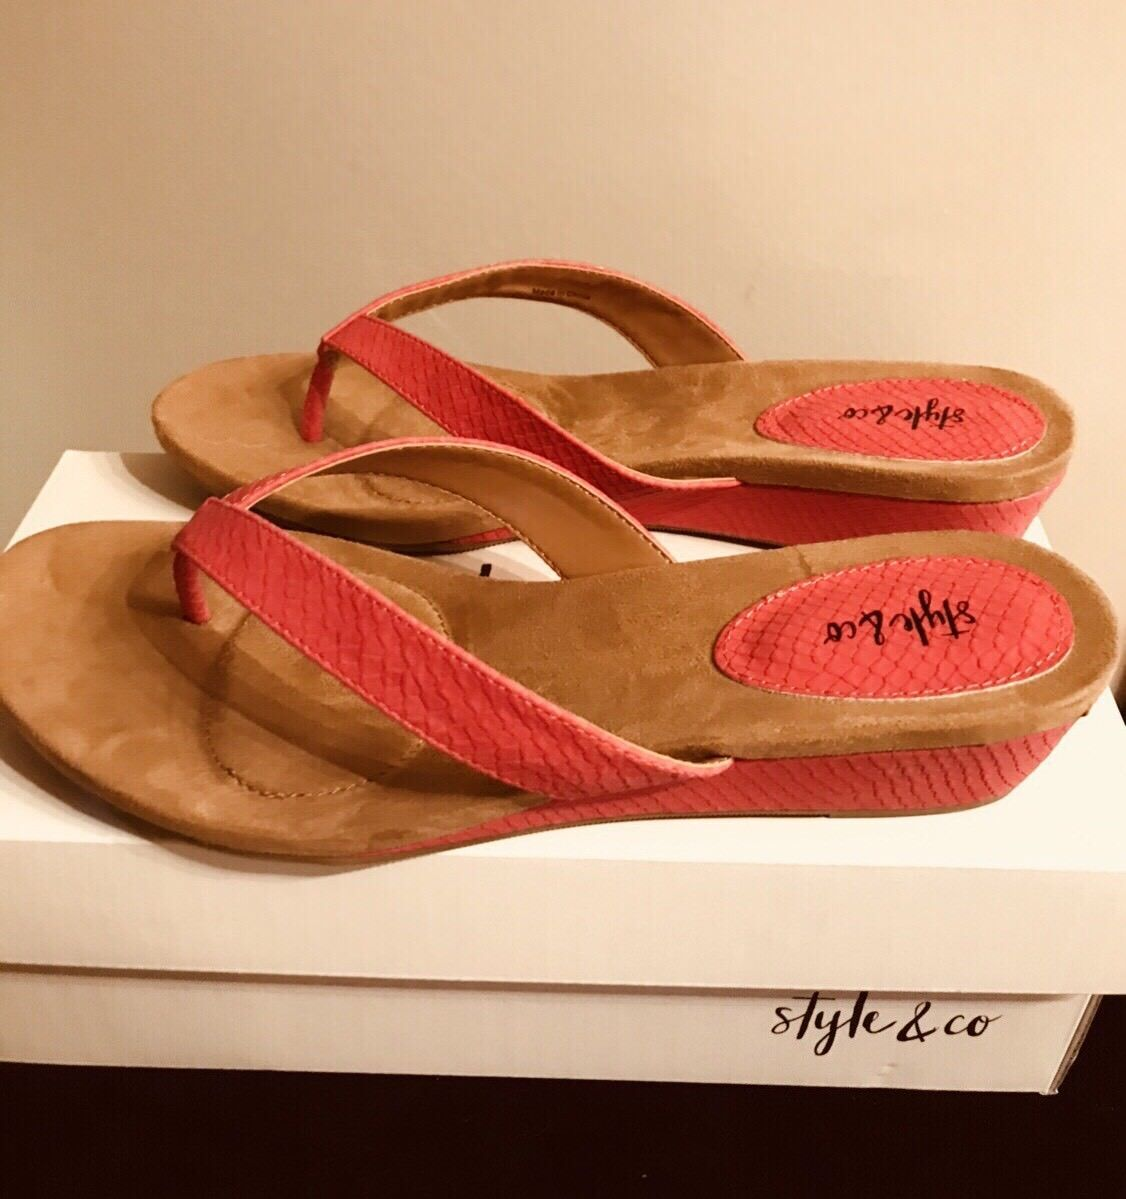 New Style & Thong Co Haloe2 Red Hot Thong & Sandals 10M 7cdaaa